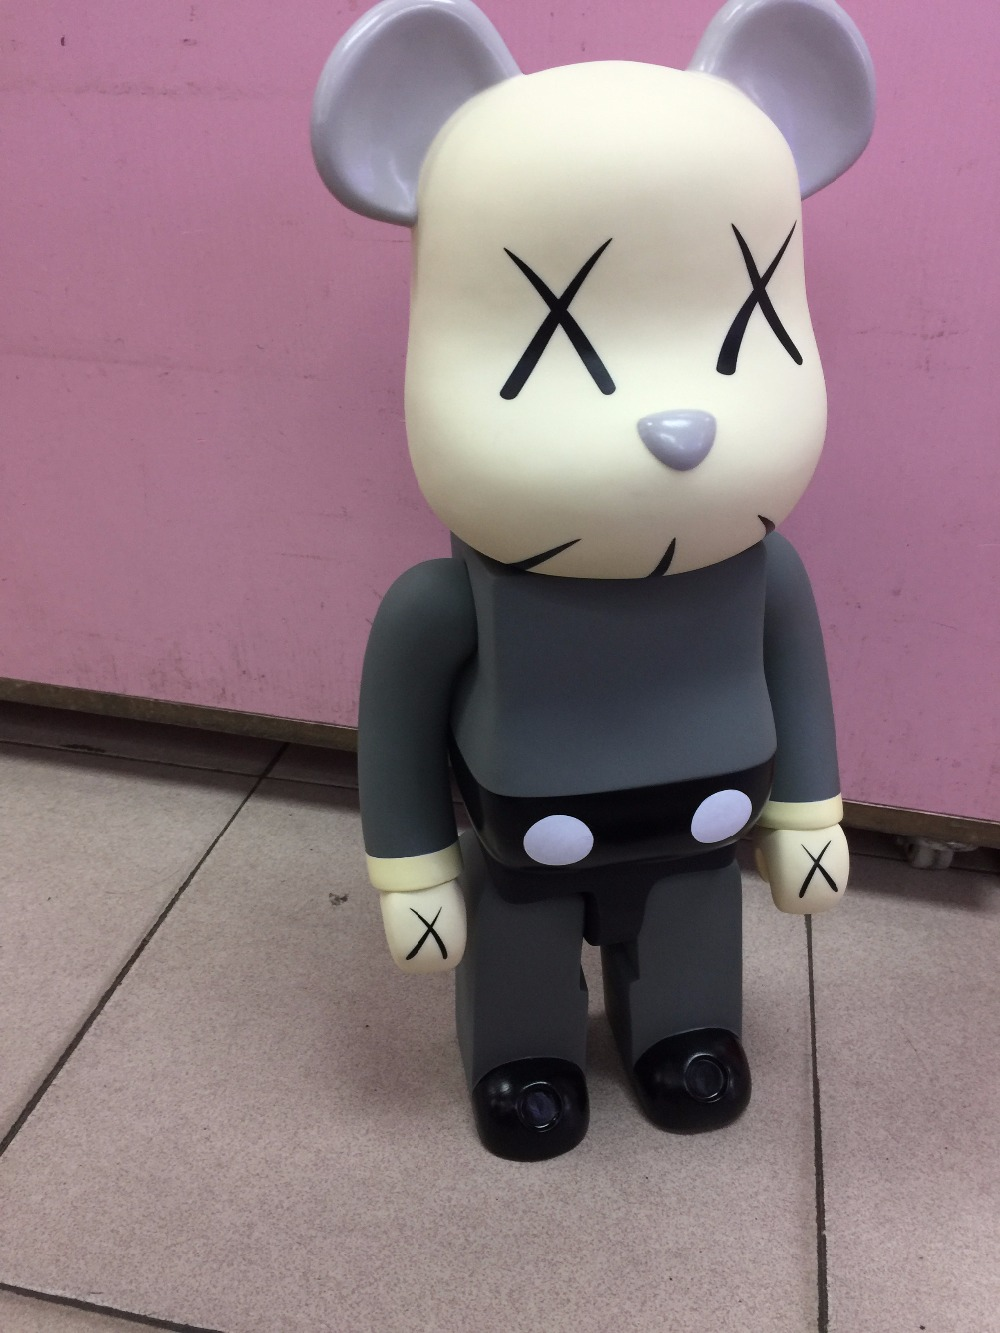 700% 52CM Kaws bearbrick bear@brick Cos Kaws Bear Doll PVC Action Figure Toy Art Work Great Gift for Friends juguetes Figures new hot christmas gift 21inch 52cm bearbrick be rbrick fashion toy pvc action figure collectible model toy decoration